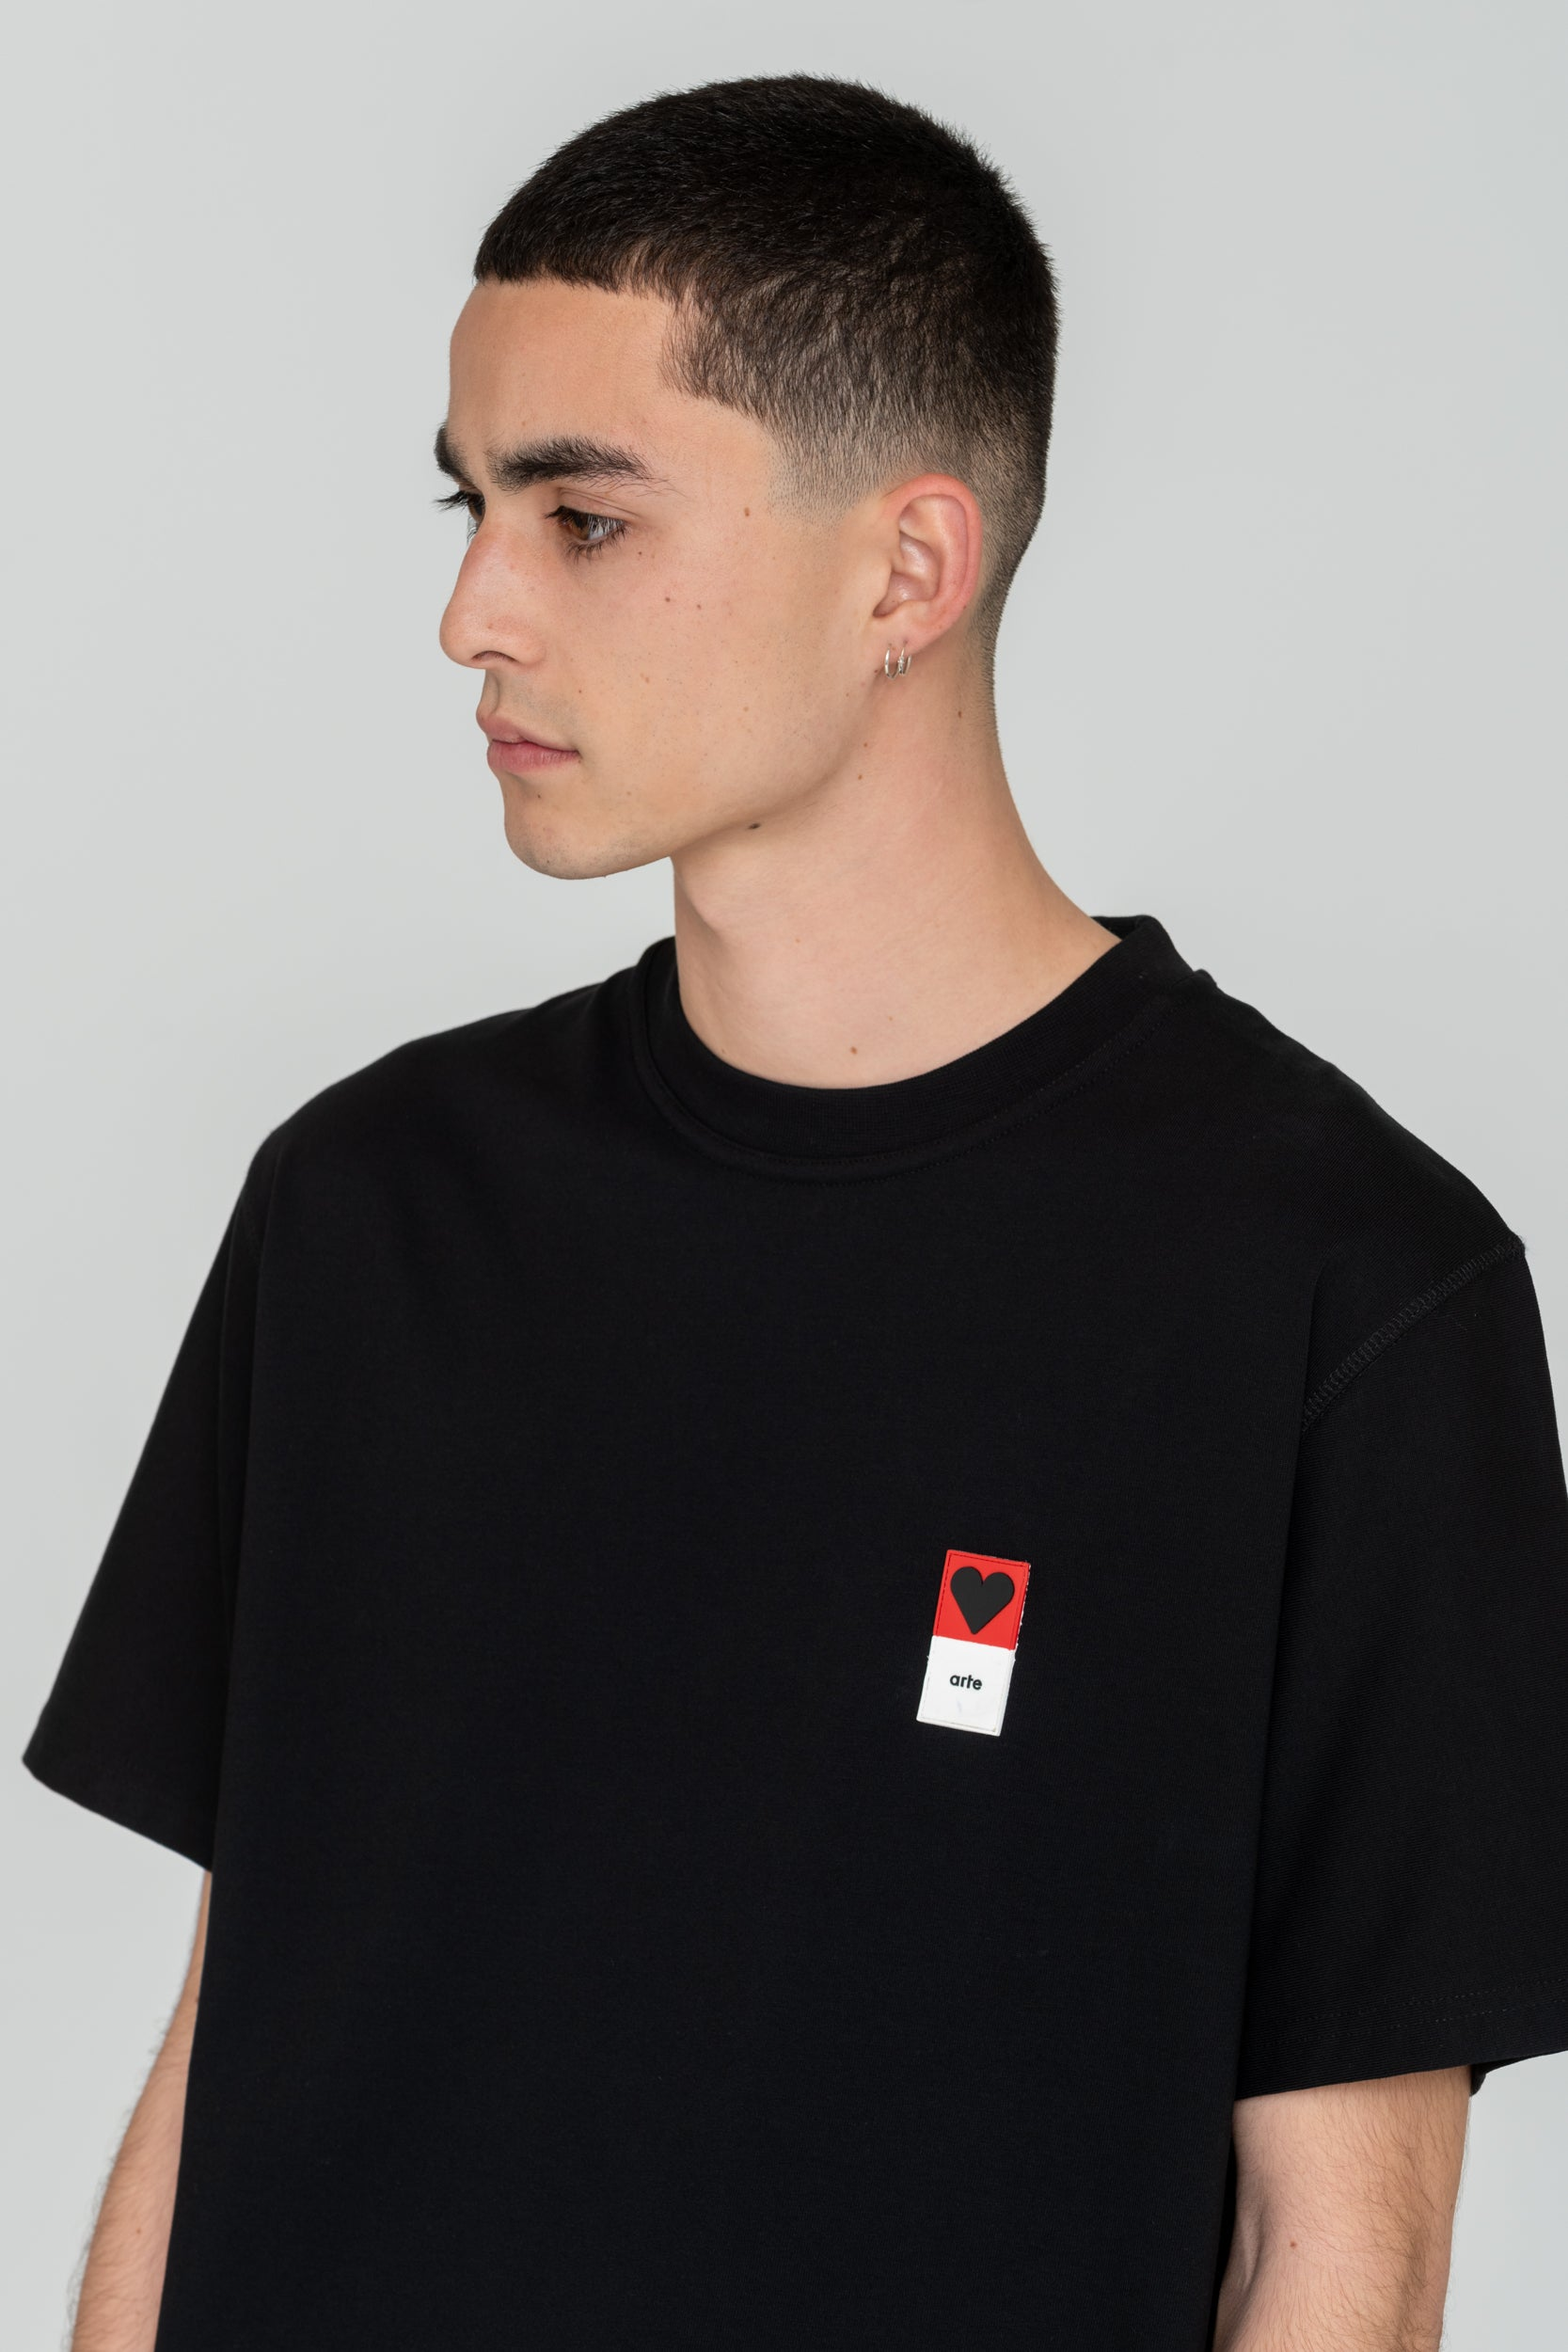 Troy Heart Patch Black T-shirt